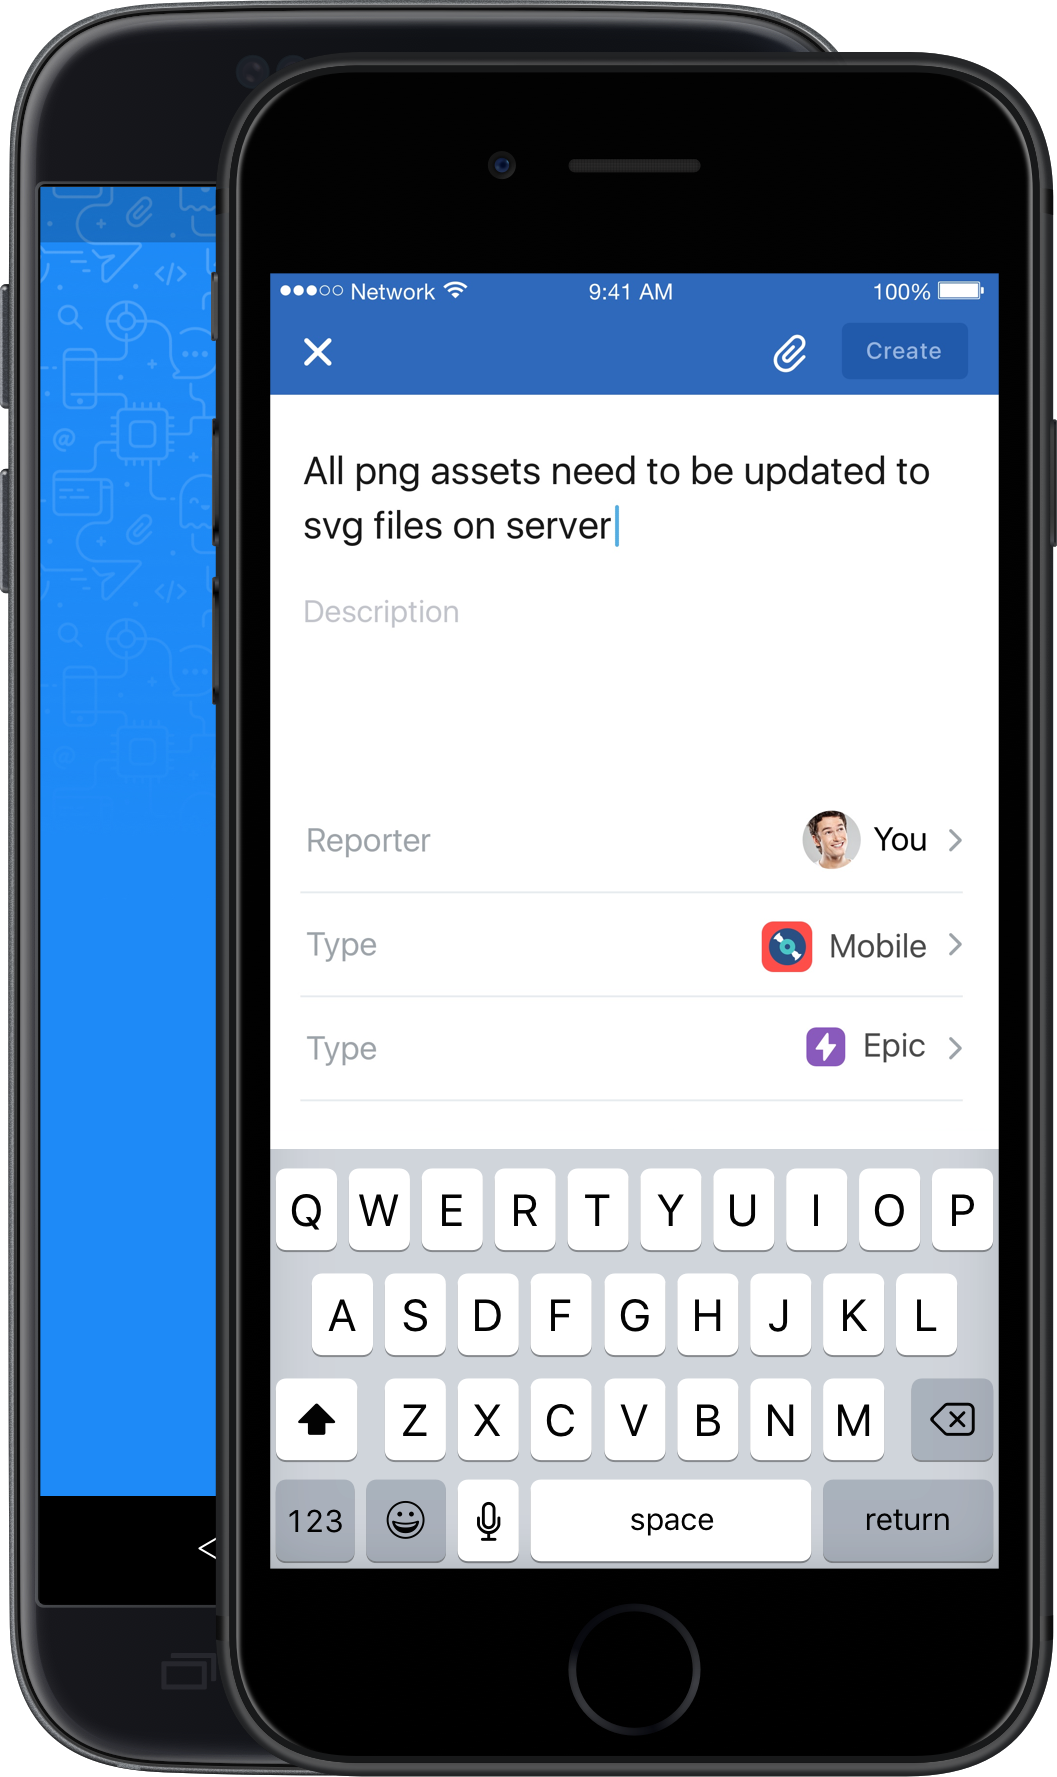 JIRA Software for iOS - Search for issues